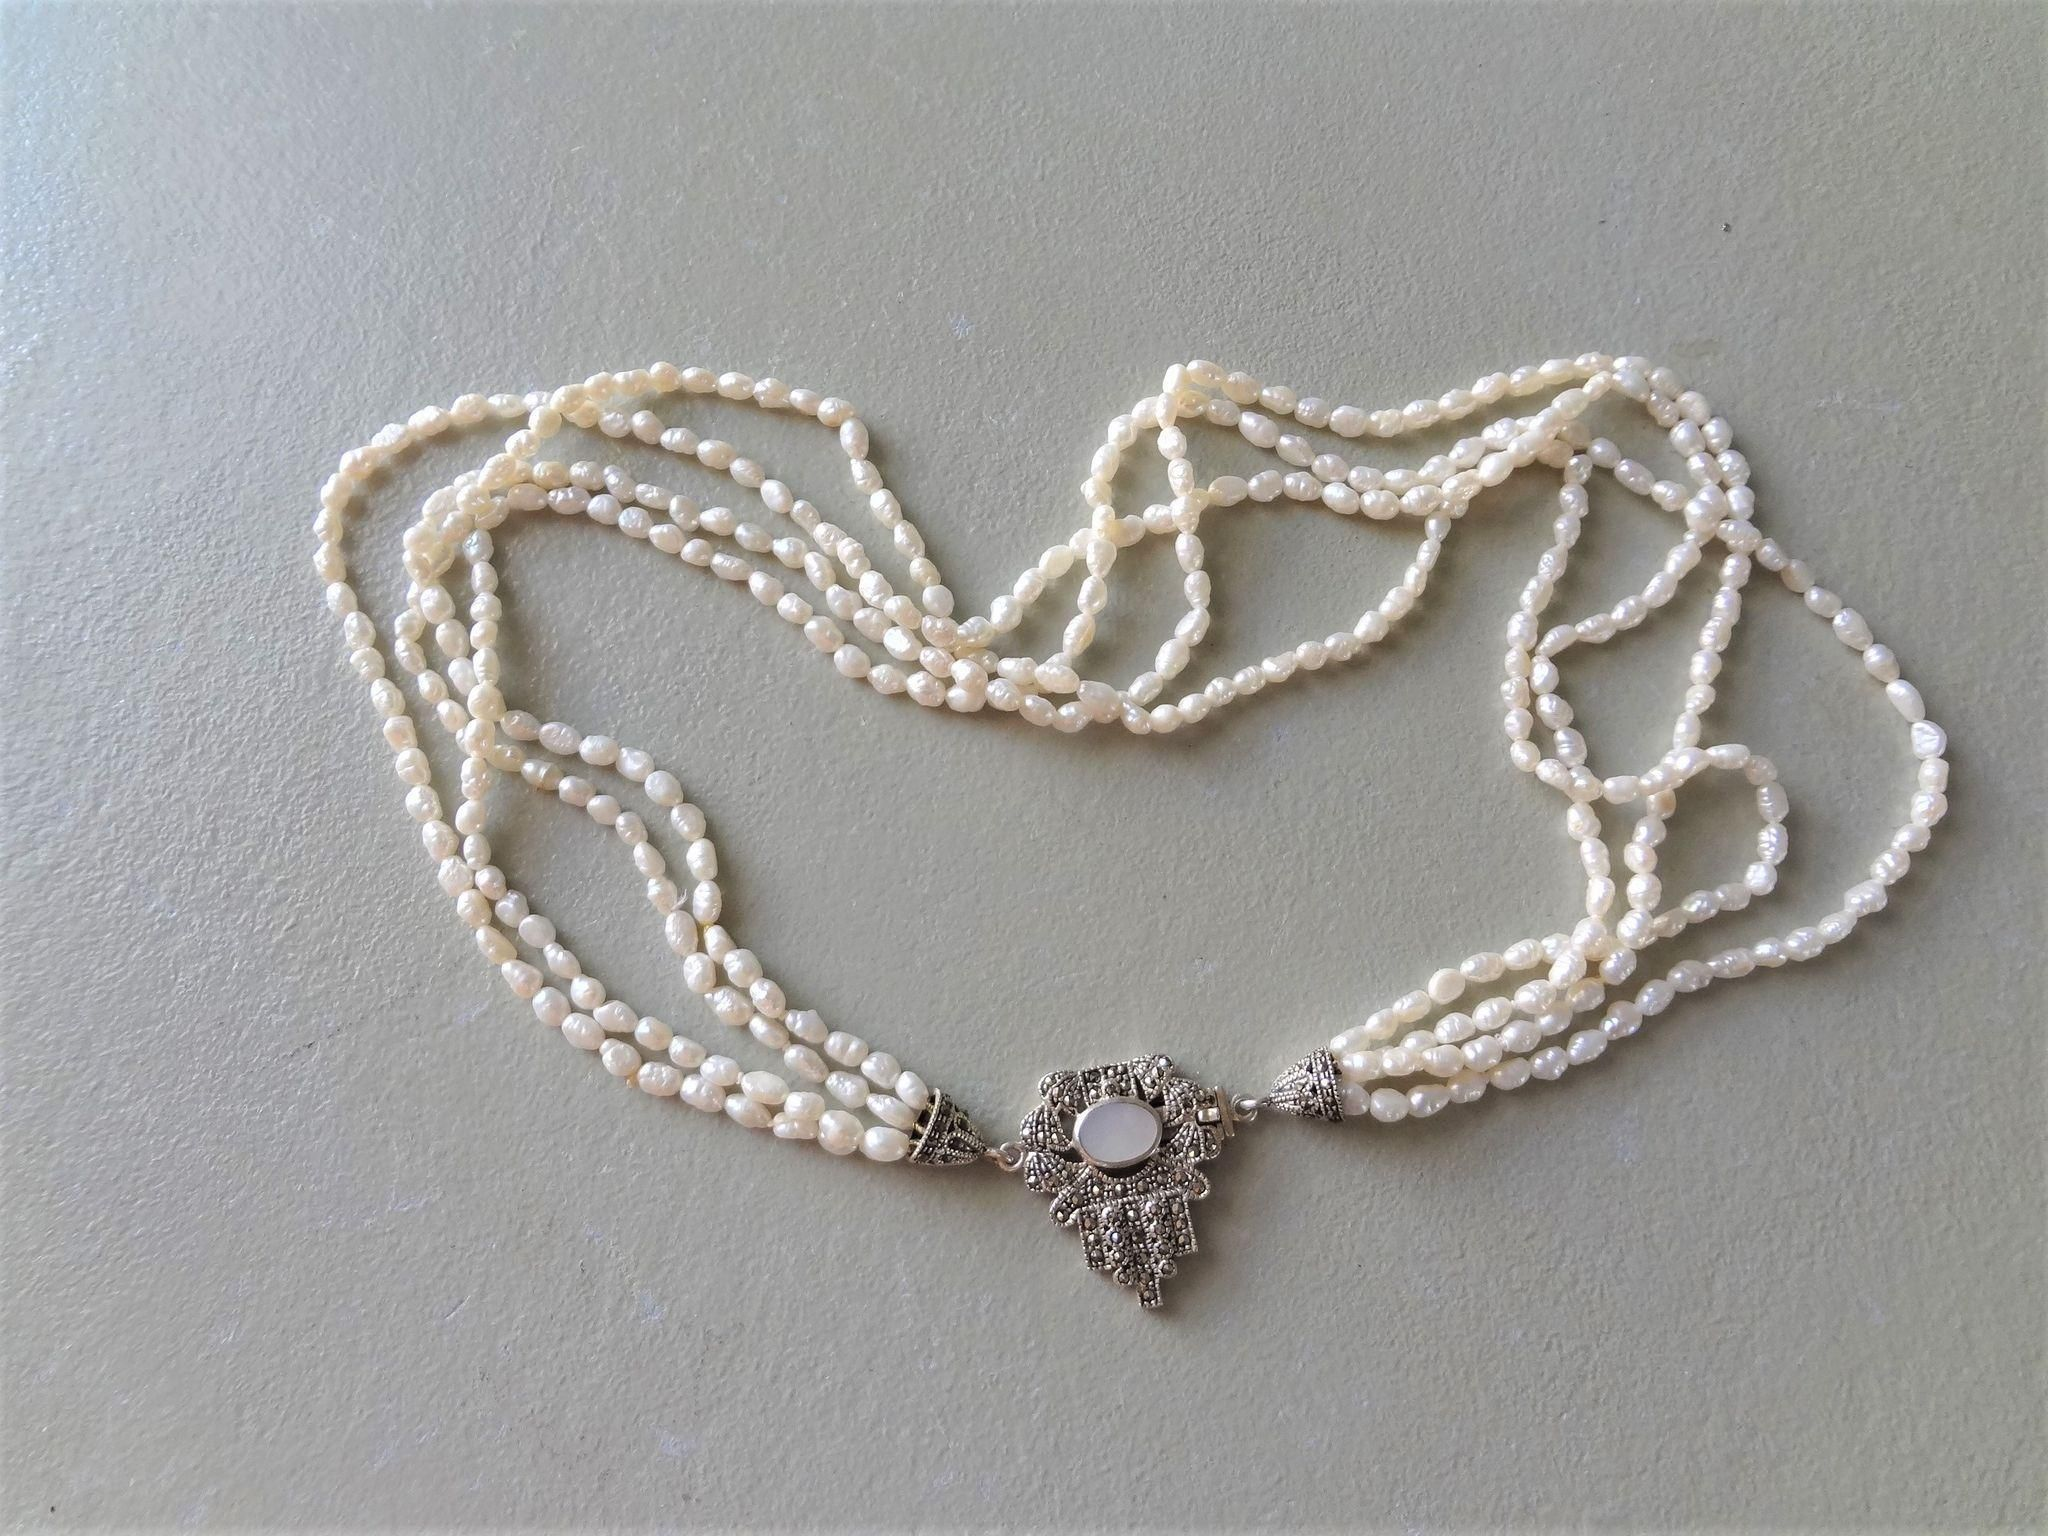 09ea275dfde44f Vintage Art Deco Marcasite Mother Of Pearl Clasp Cultured Seed Pearl  Necklace